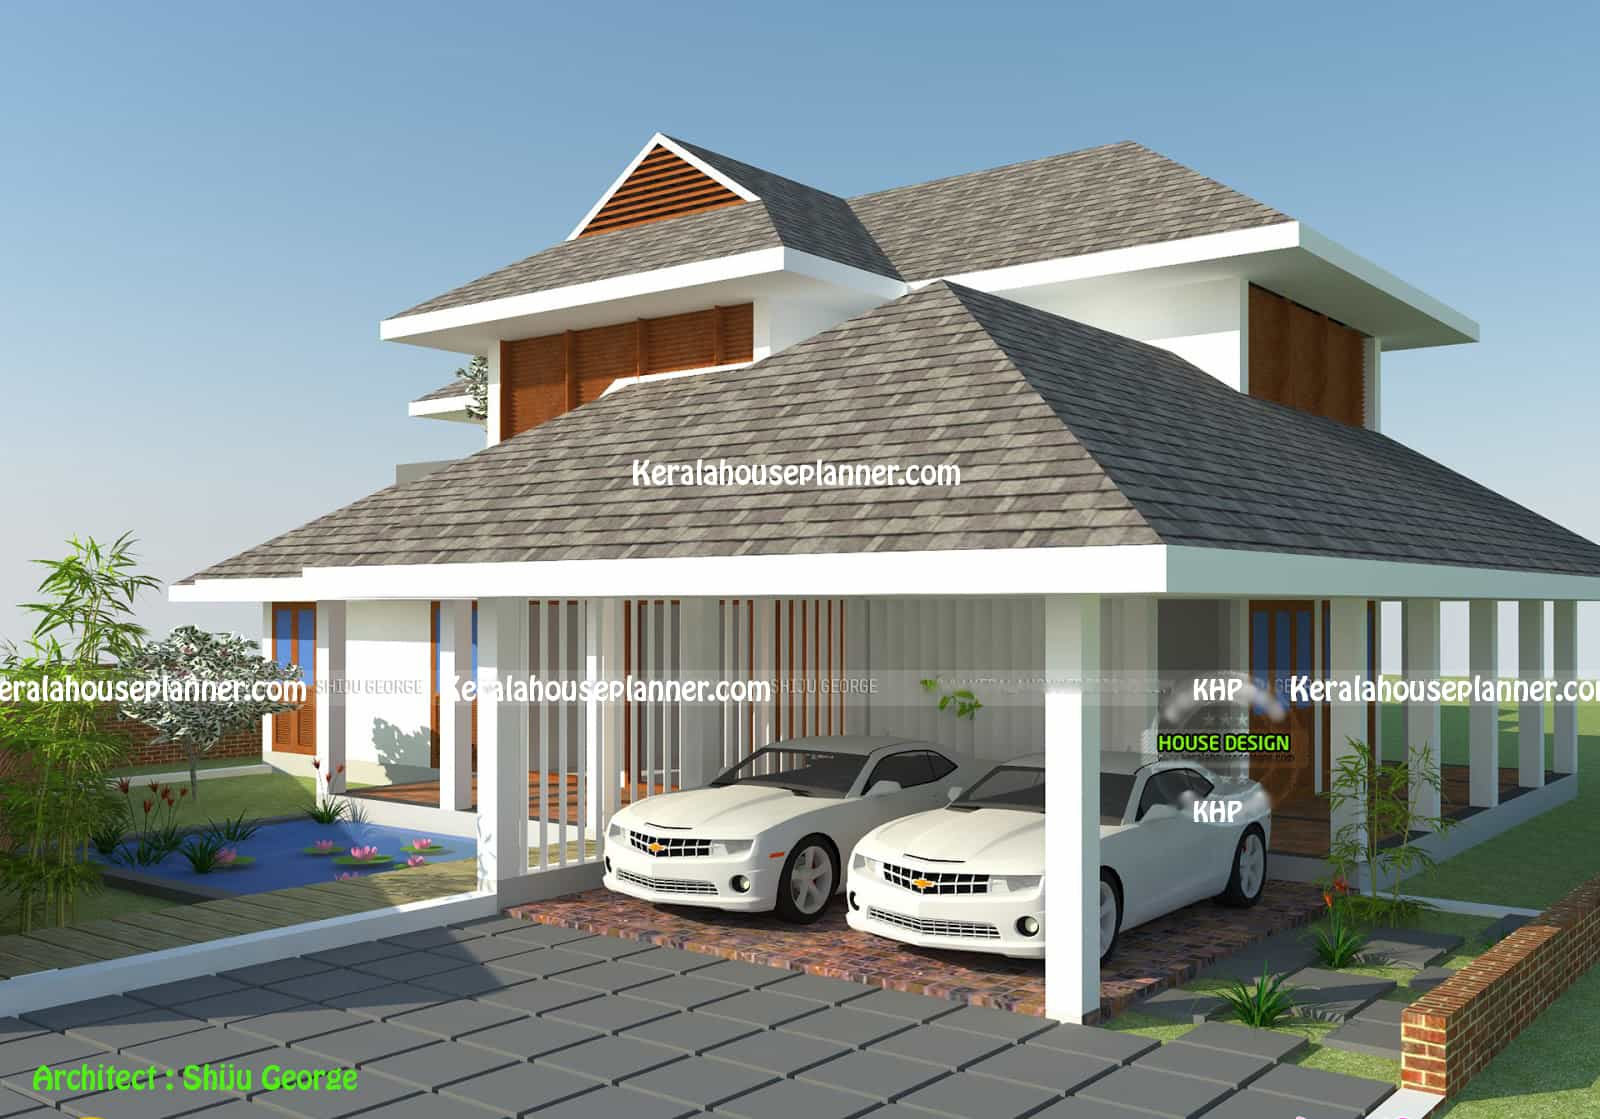 Roof Design Ideas: Kerala Home Design & House Plans